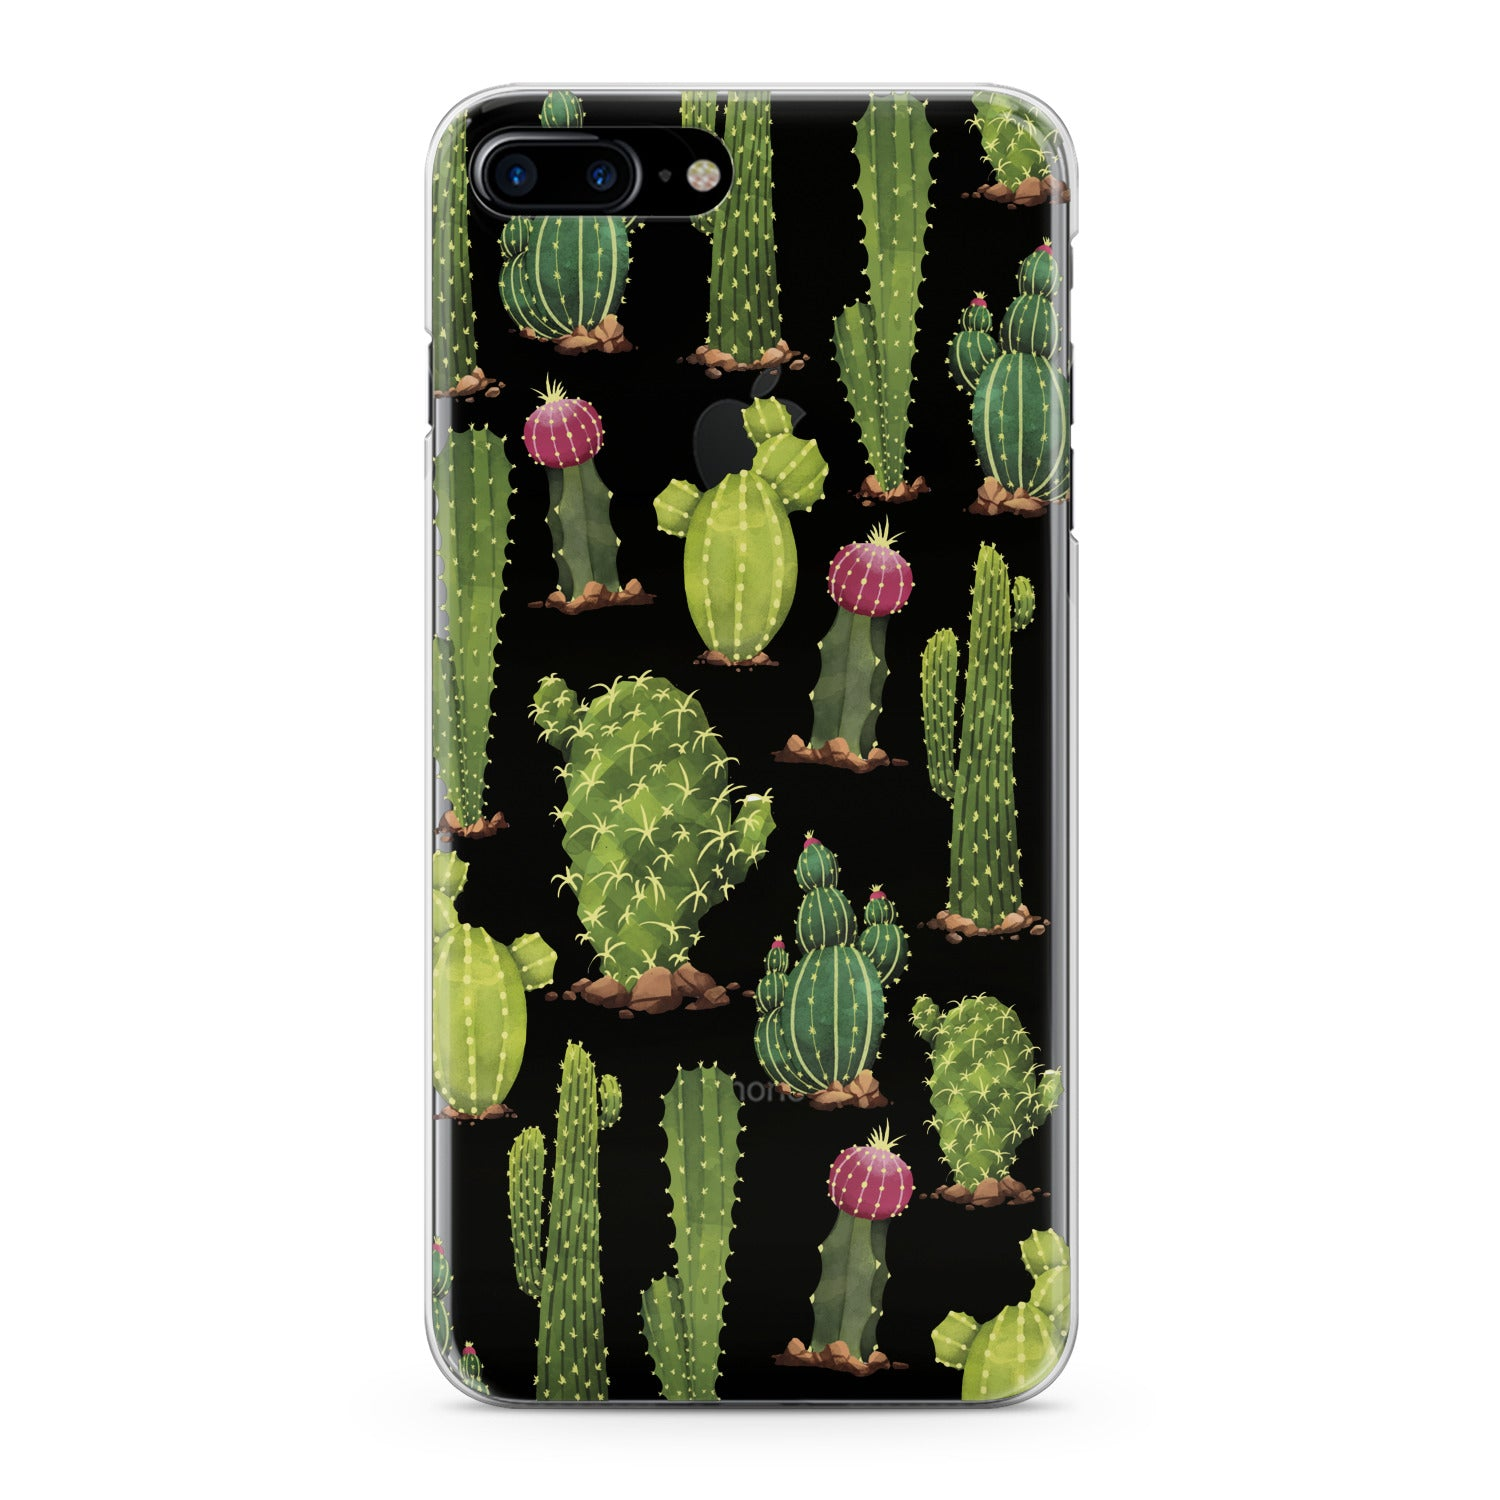 Lex Altern Cactus Pattern Phone Case for your iPhone & Android phone.